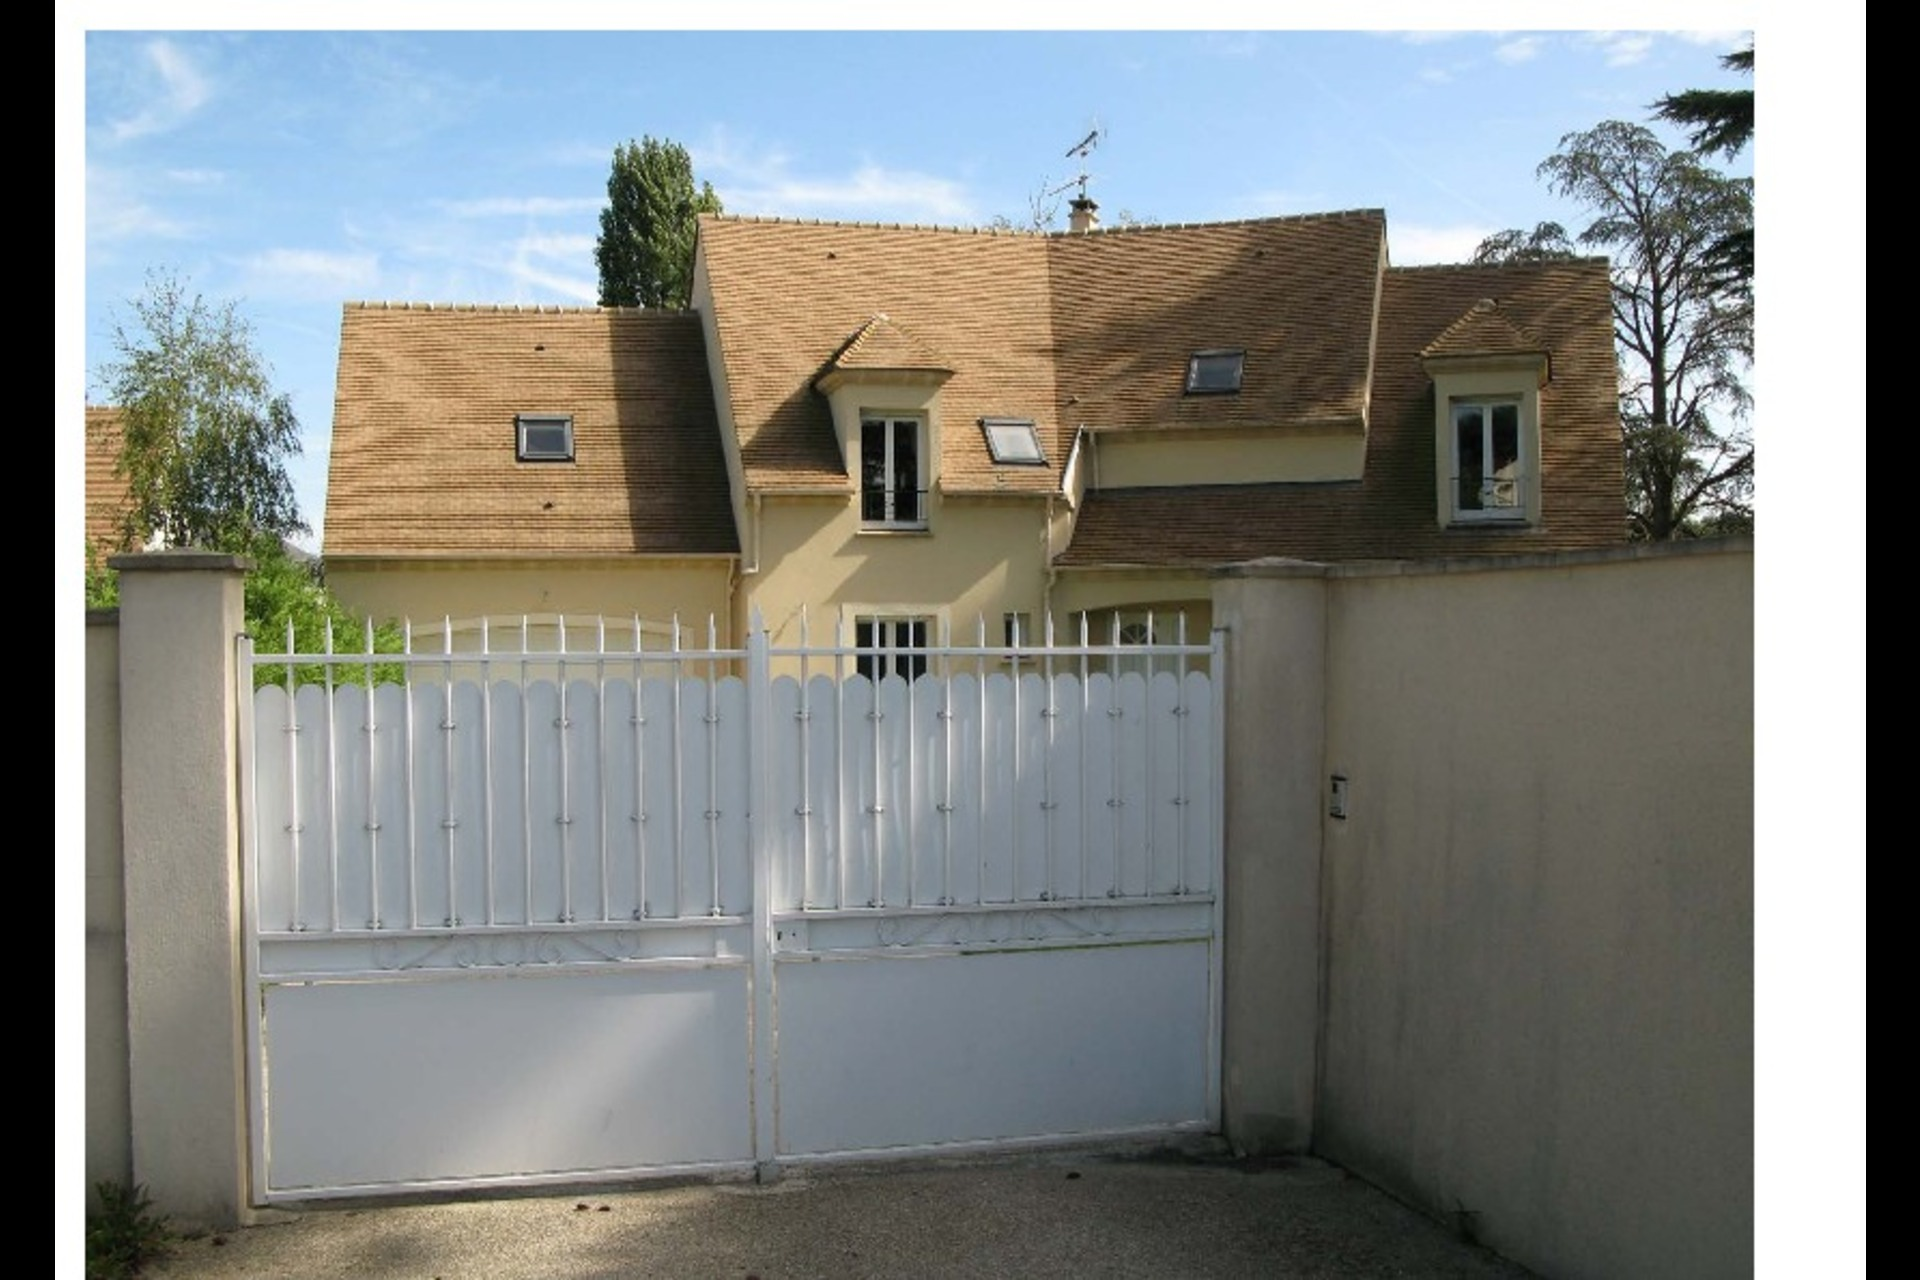 image 5 - House For rent feucherolles - 9 rooms